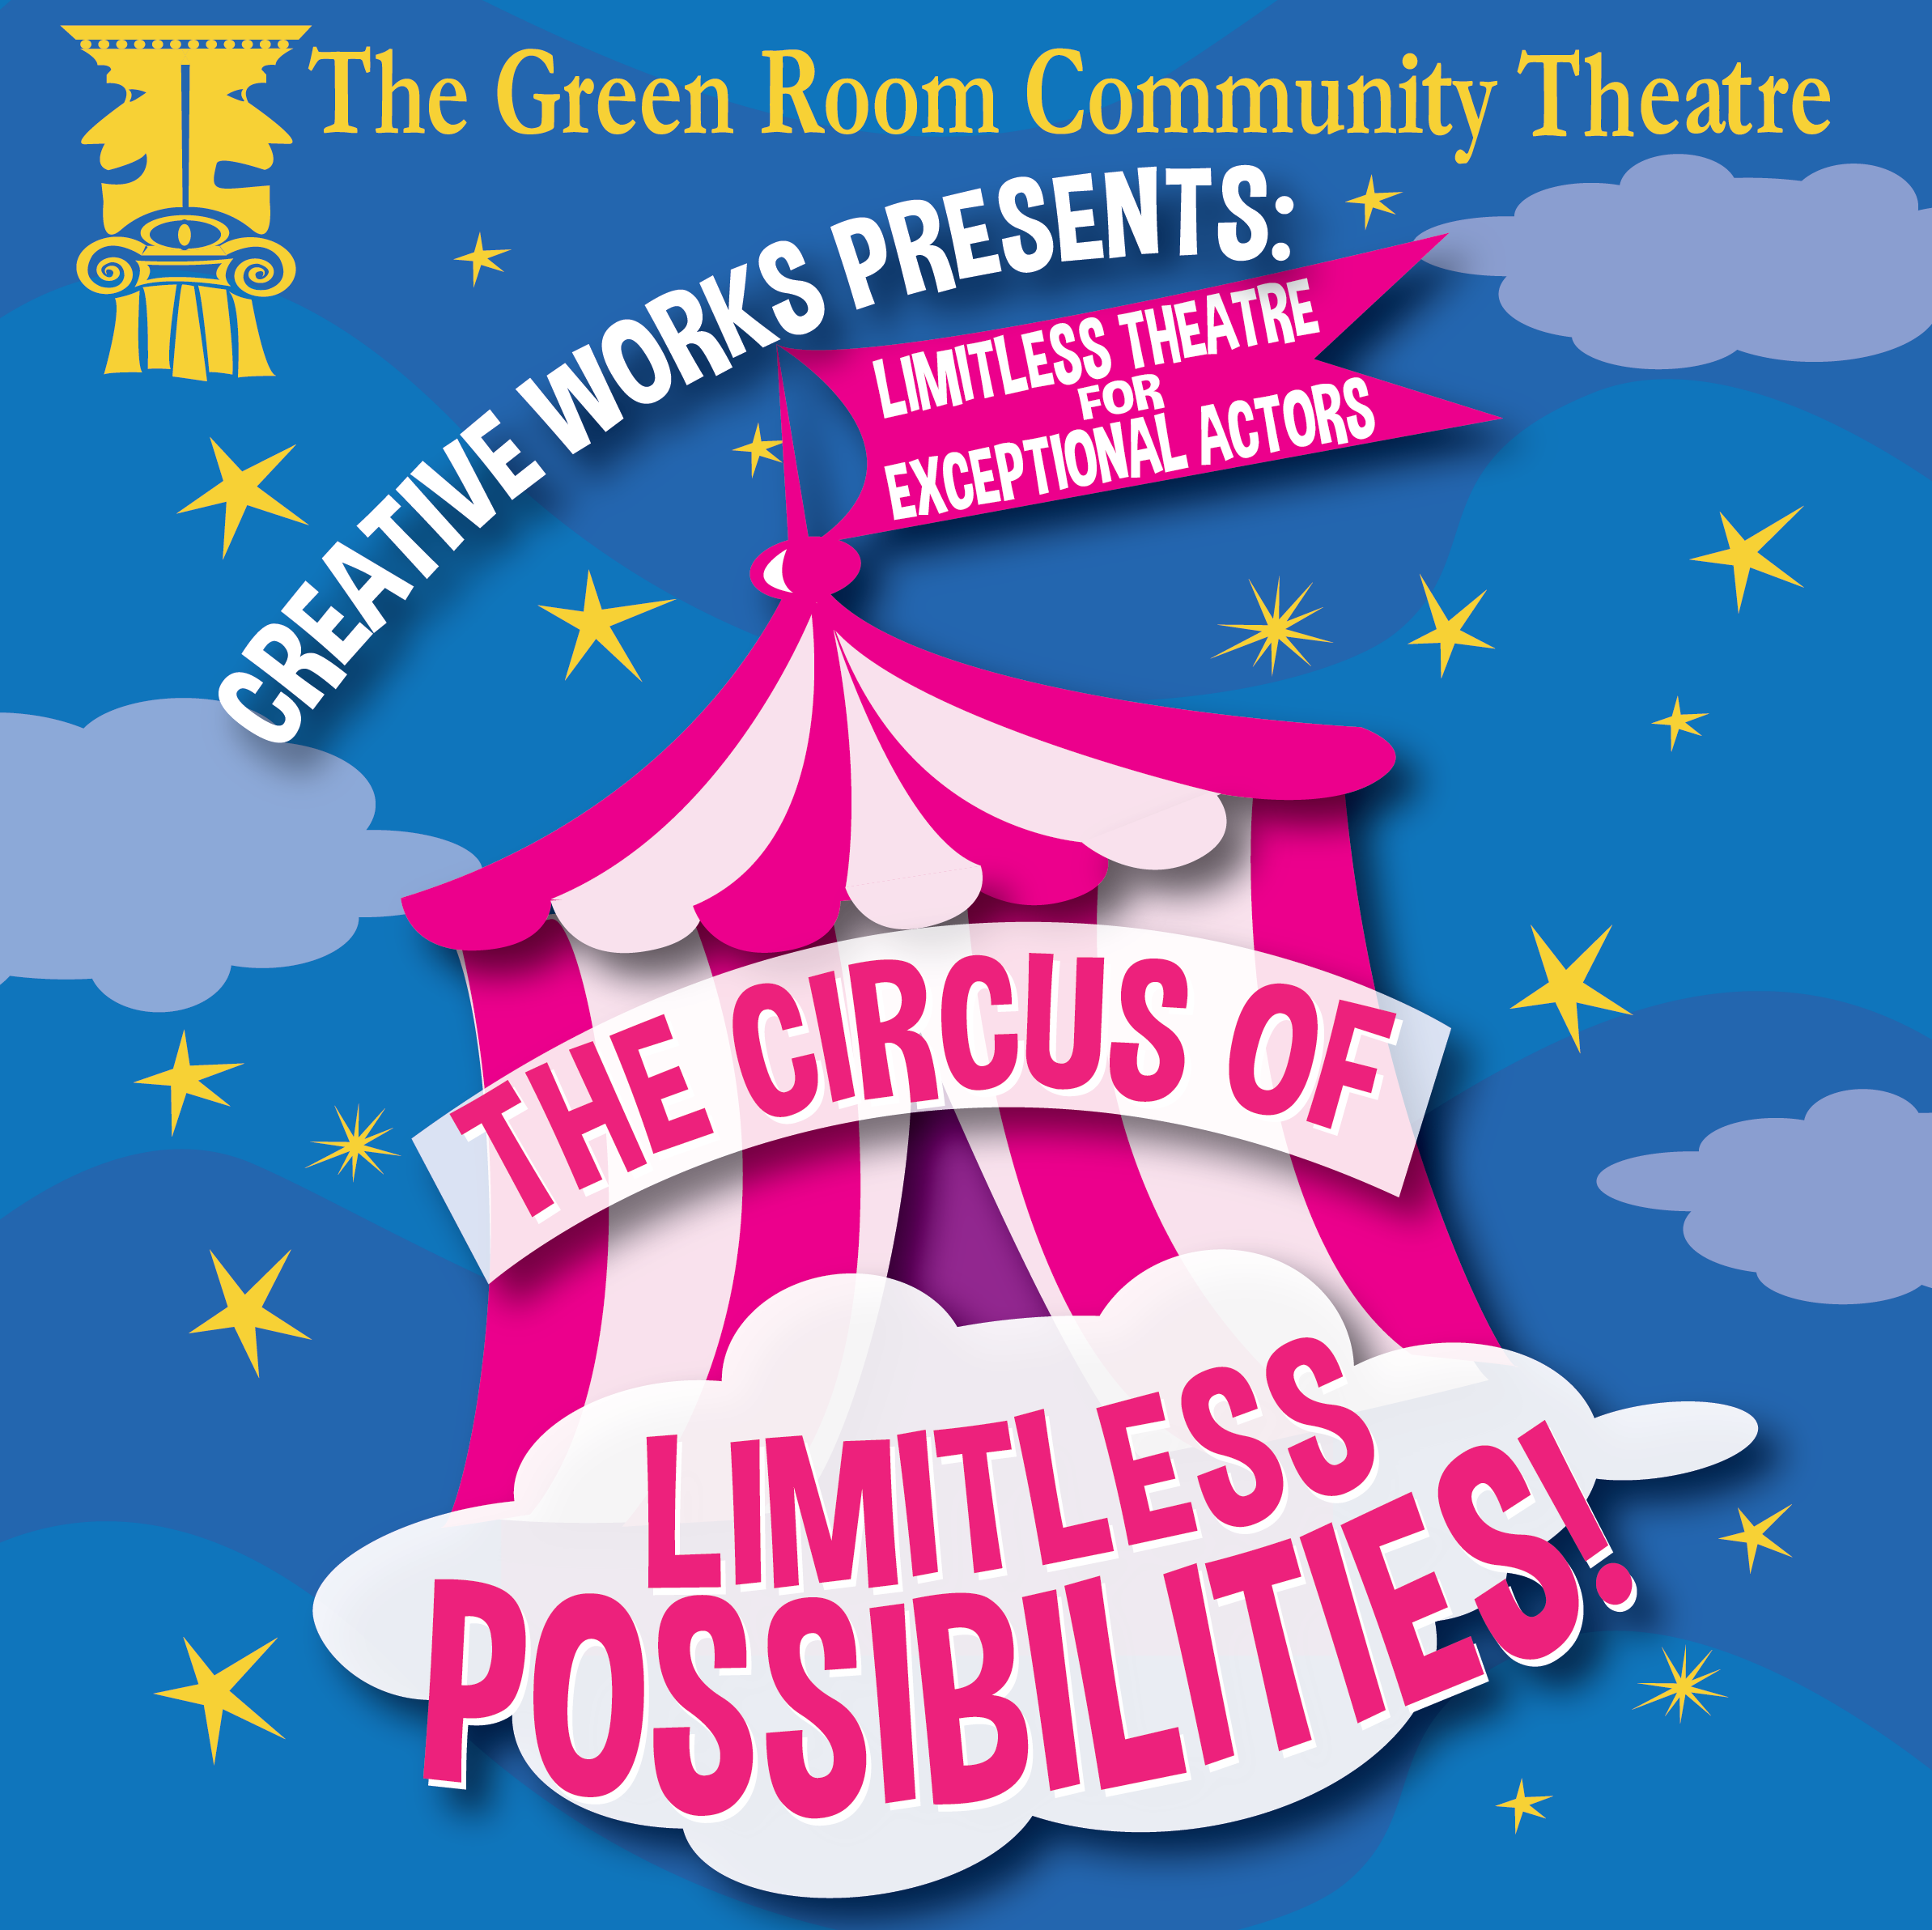 The Circus of Limitless Possibilities